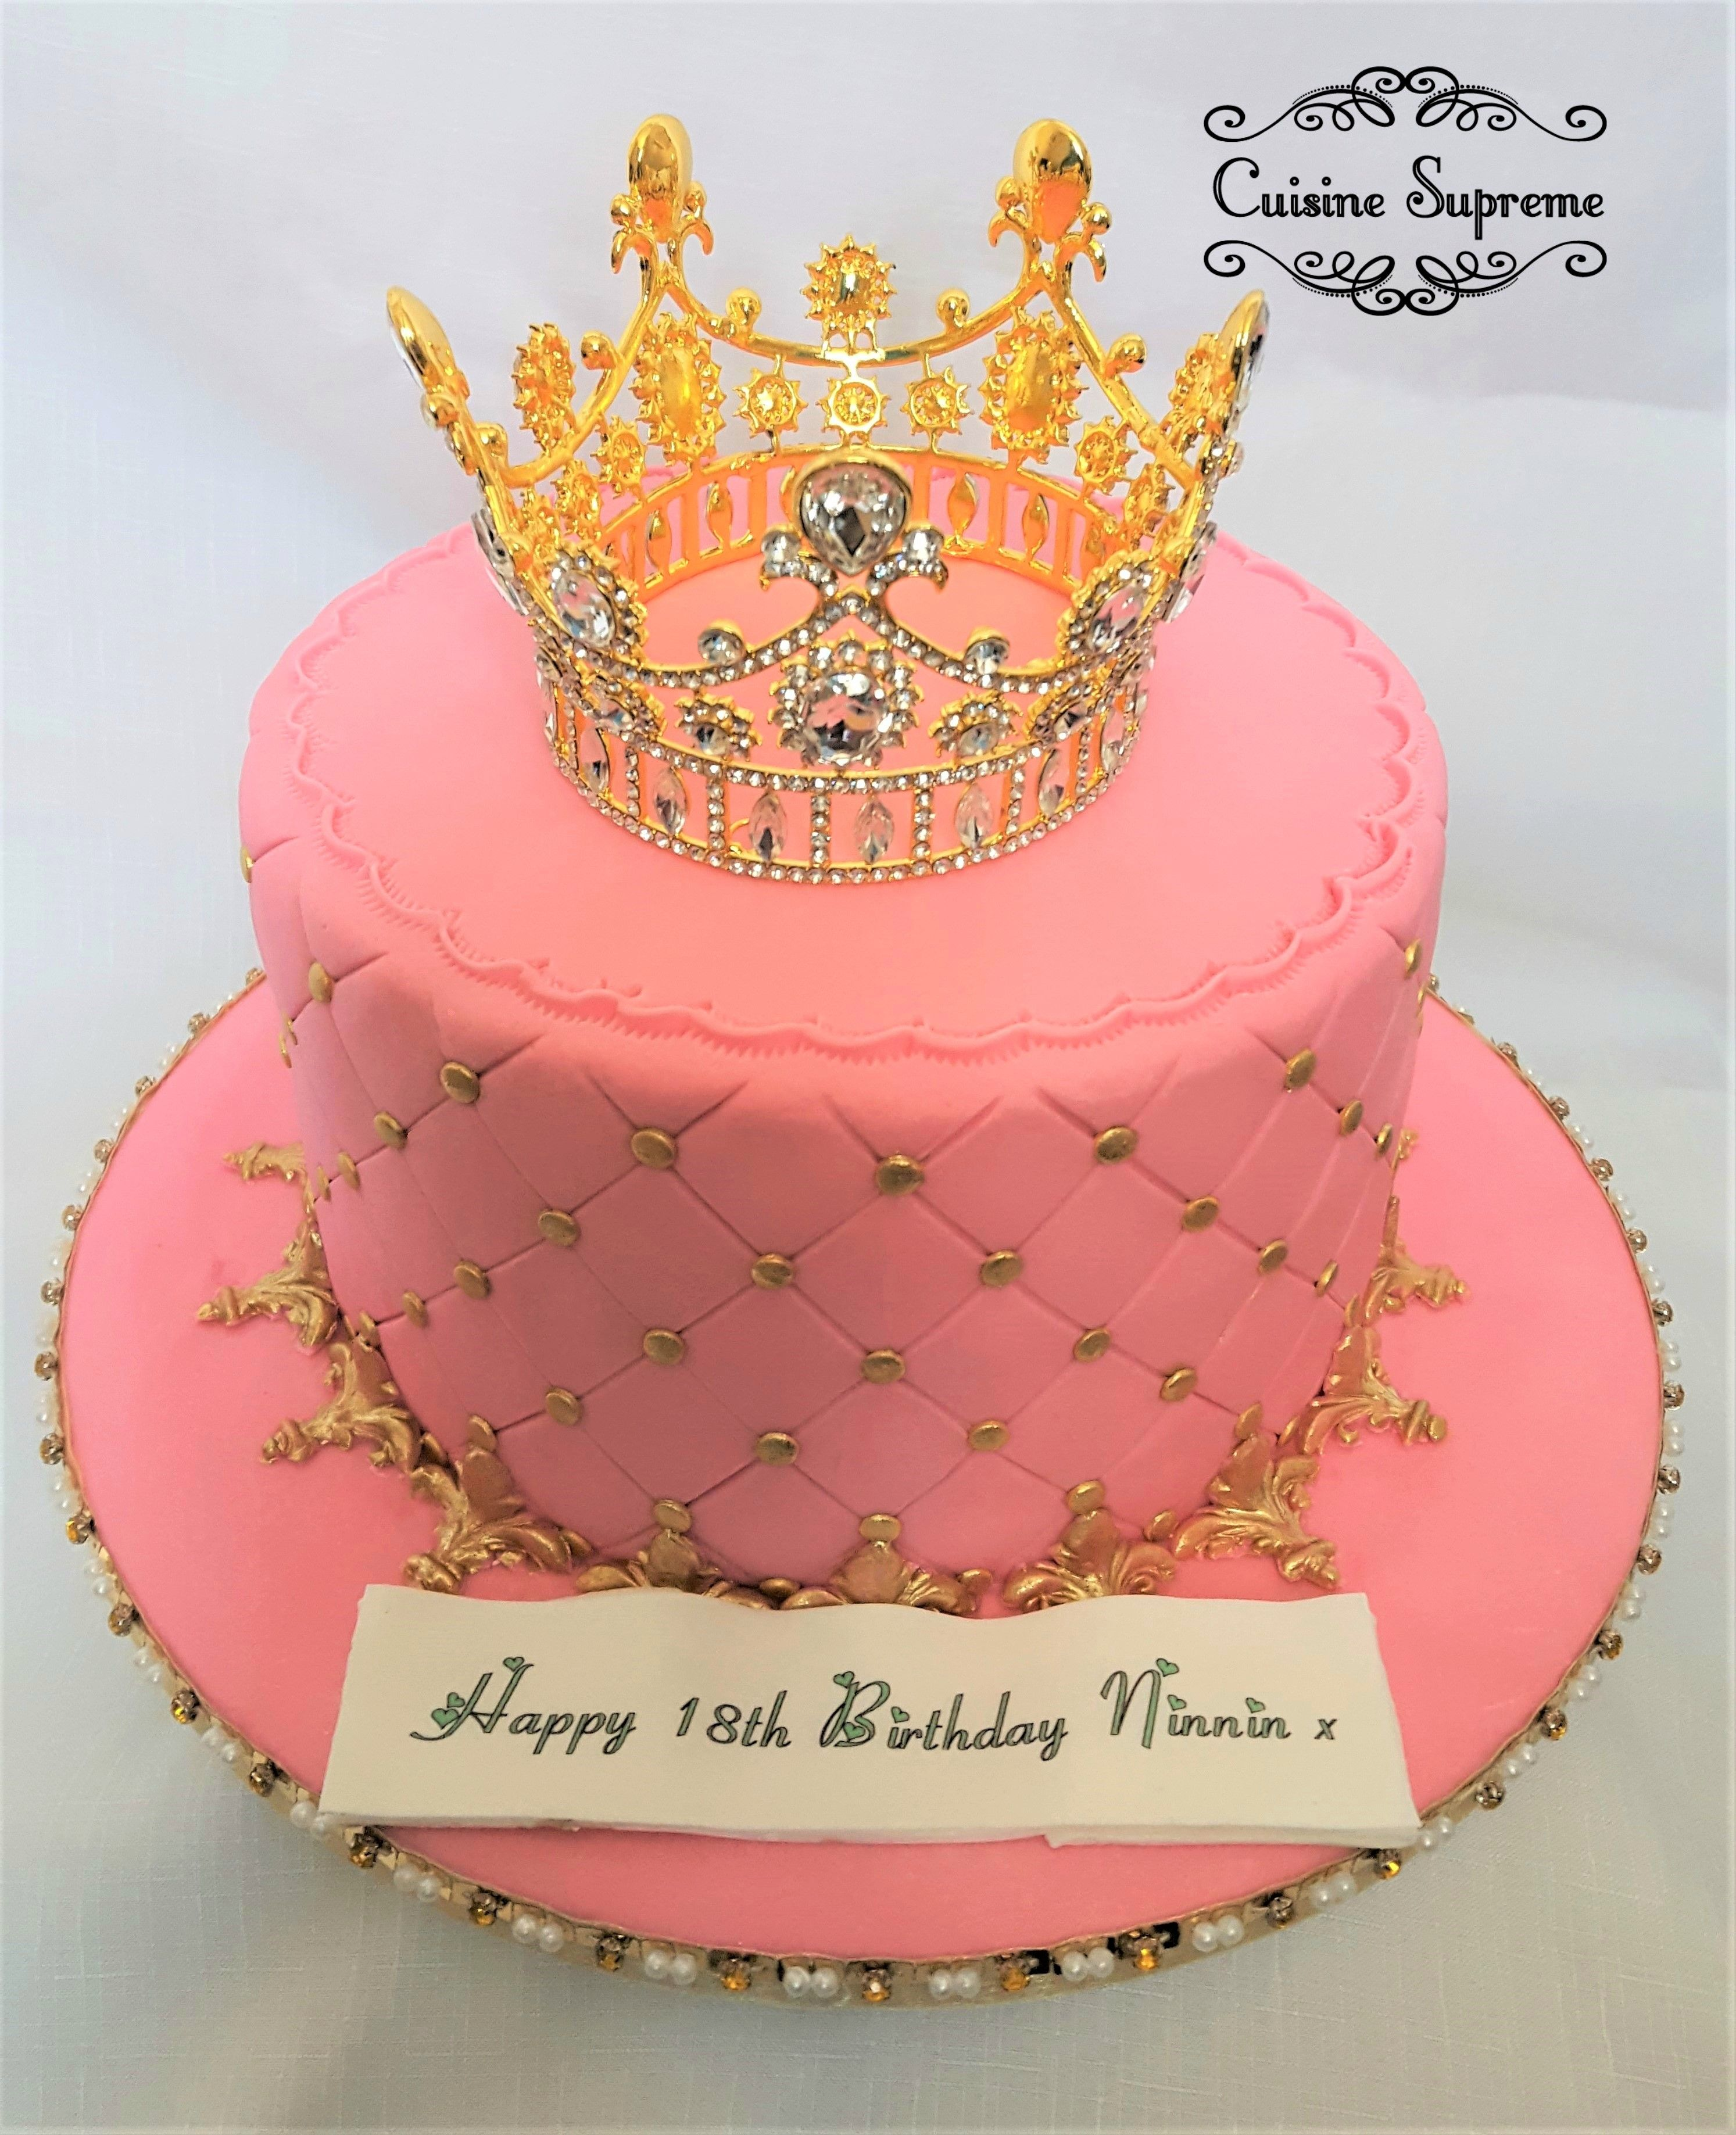 Incredible 18Th Birthday Sponge Cake With Diamante Crown With Images Funny Birthday Cards Online Alyptdamsfinfo